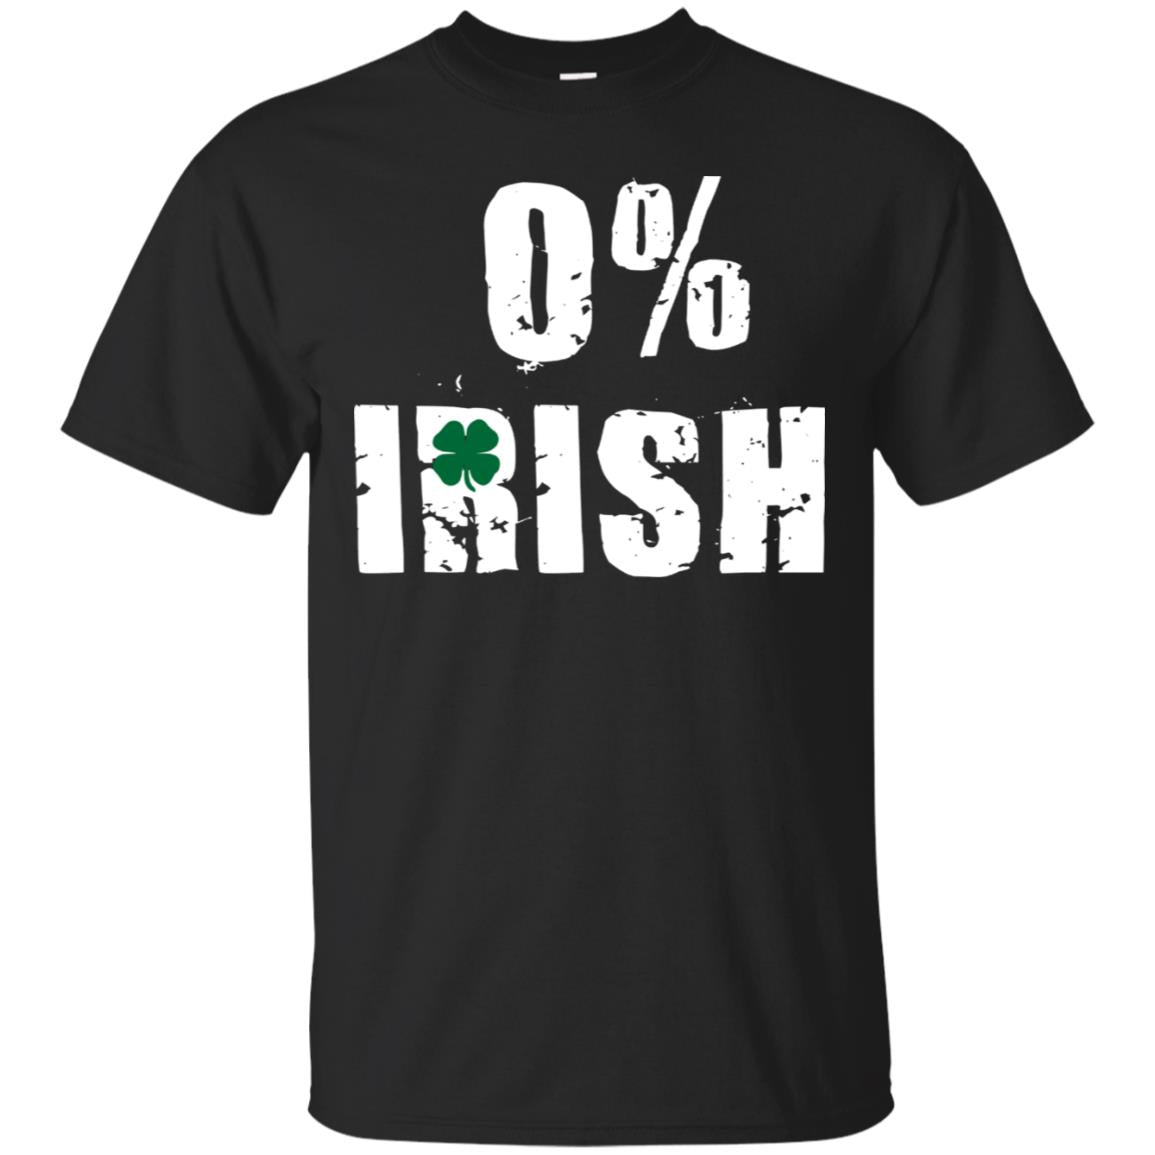 0% Irish Happy Humor st Patricks day T shirt 99promocode